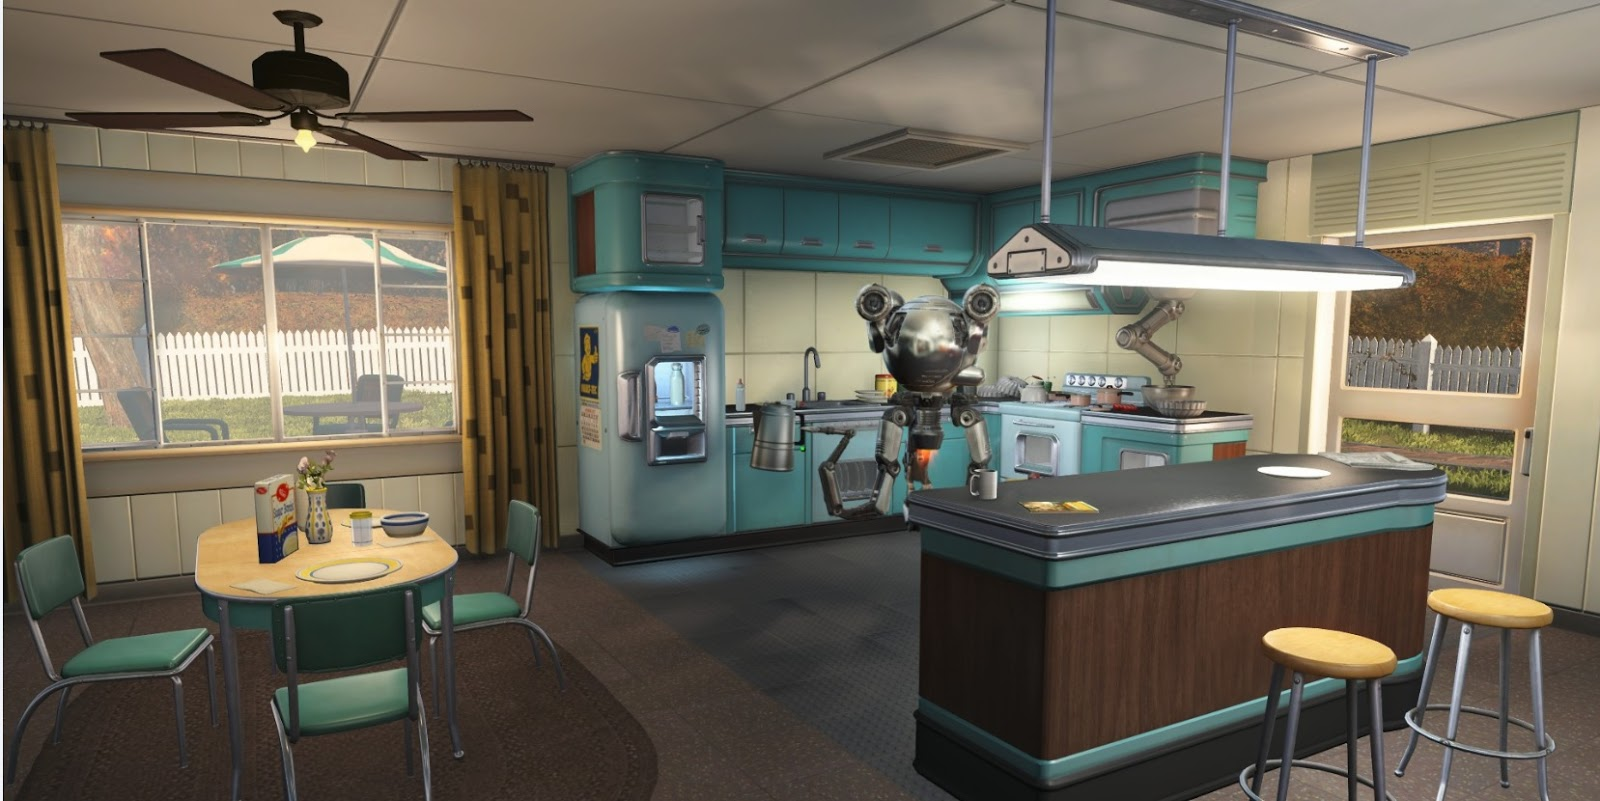 New Fall Creator Wallpaper Mod The Sims The House Of Tomorrow Fallout 4